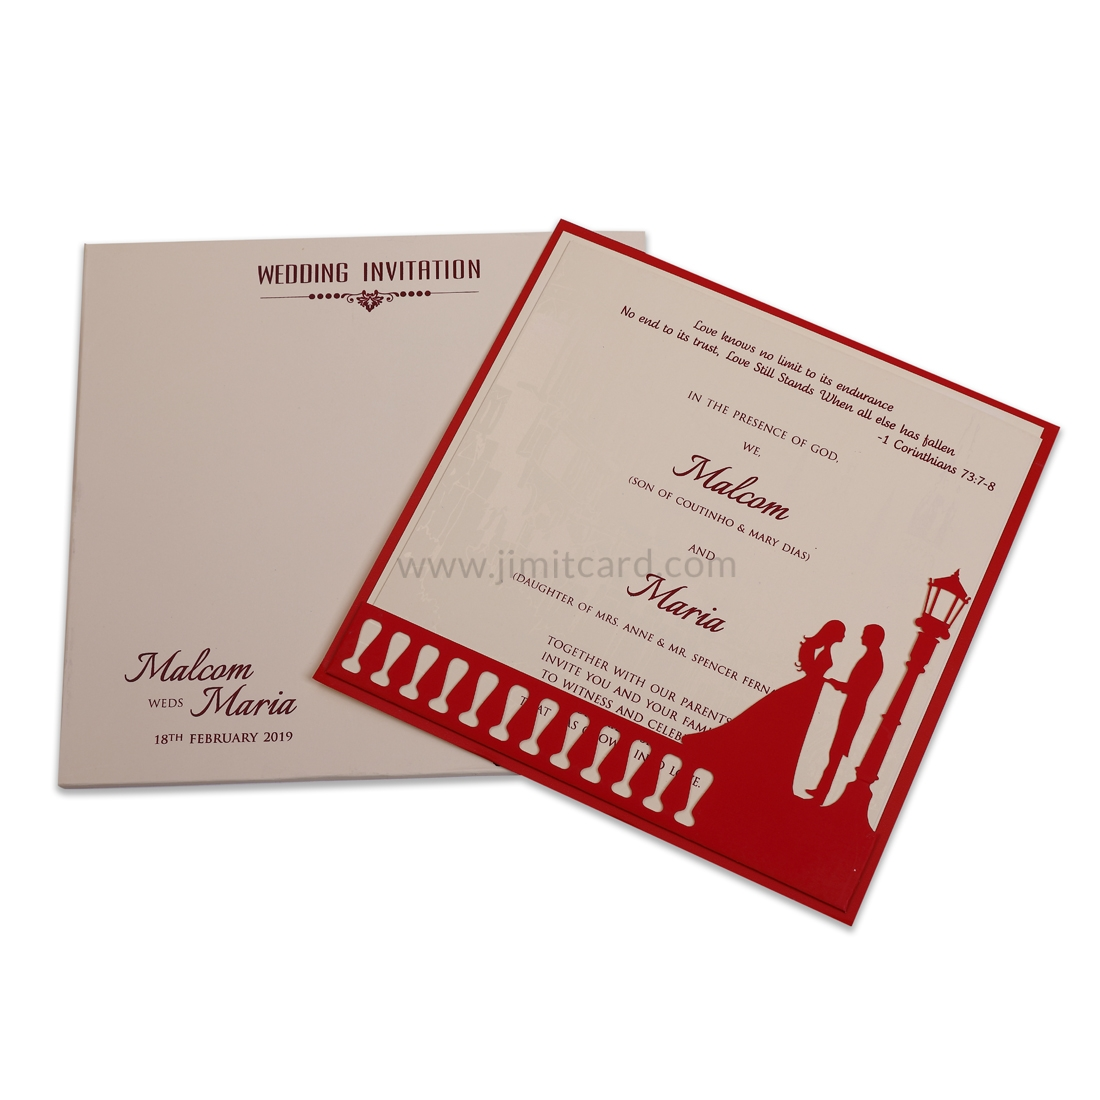 Cream and Red Wedding Invitation Card with Bride and Groom in Laser Cut-0